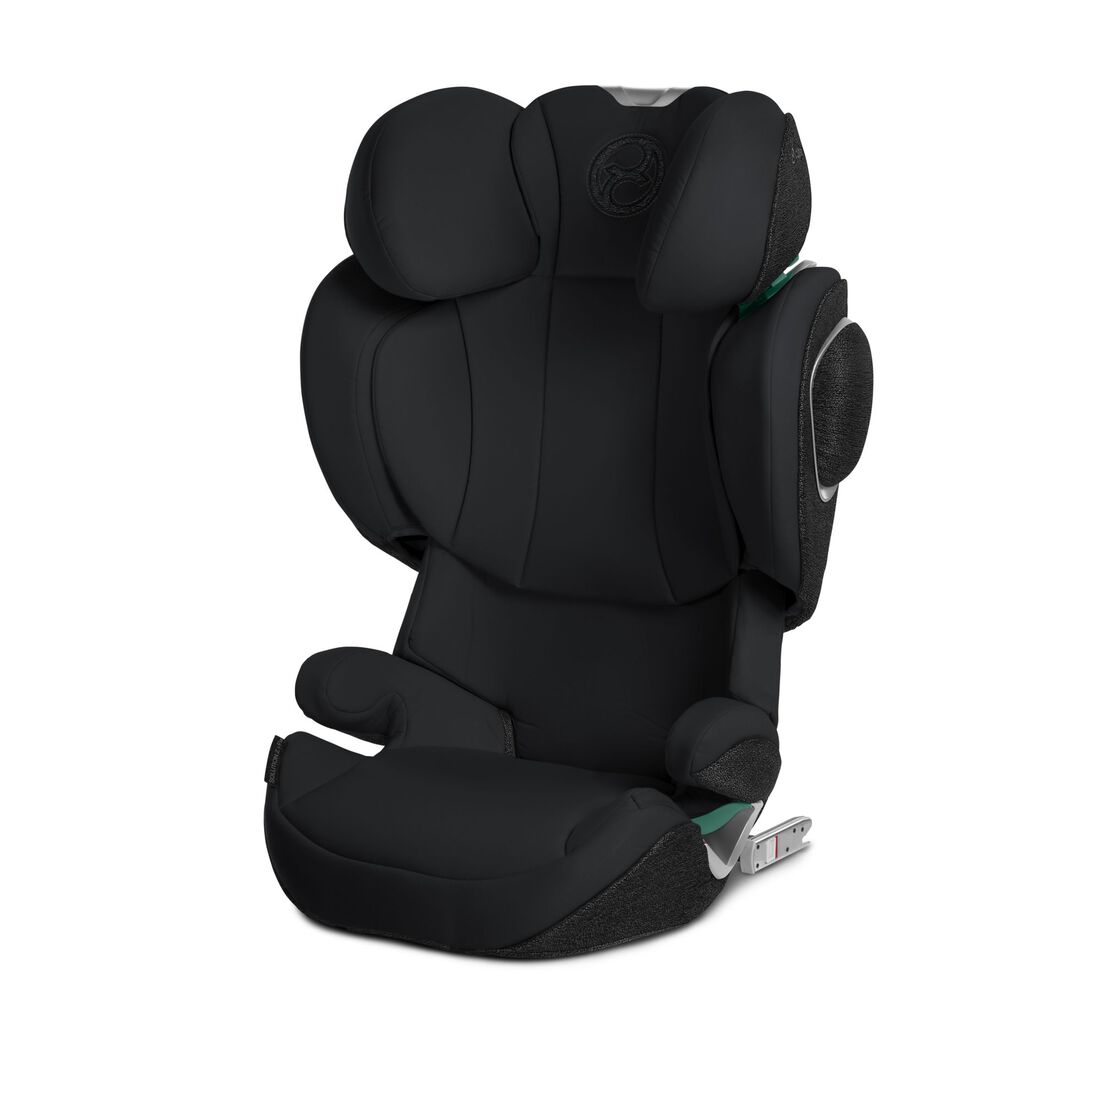 CYBEX Sirona Z - MAXIMUM COMFORT IN THE CAR